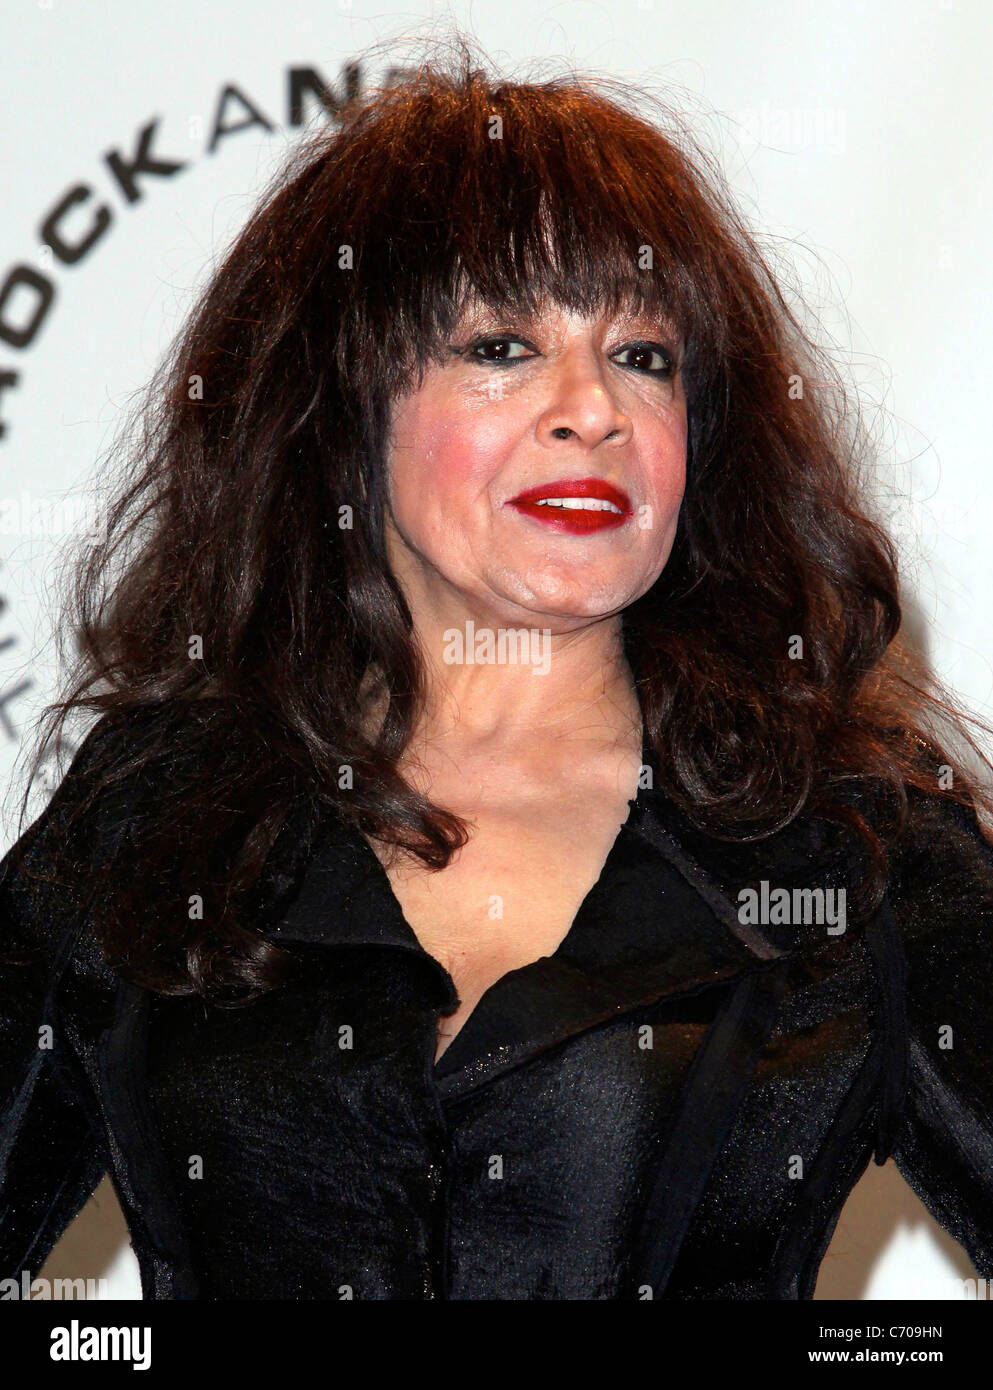 Ronnie Spector Stock Photos & Ronnie Spector Stock Images ...